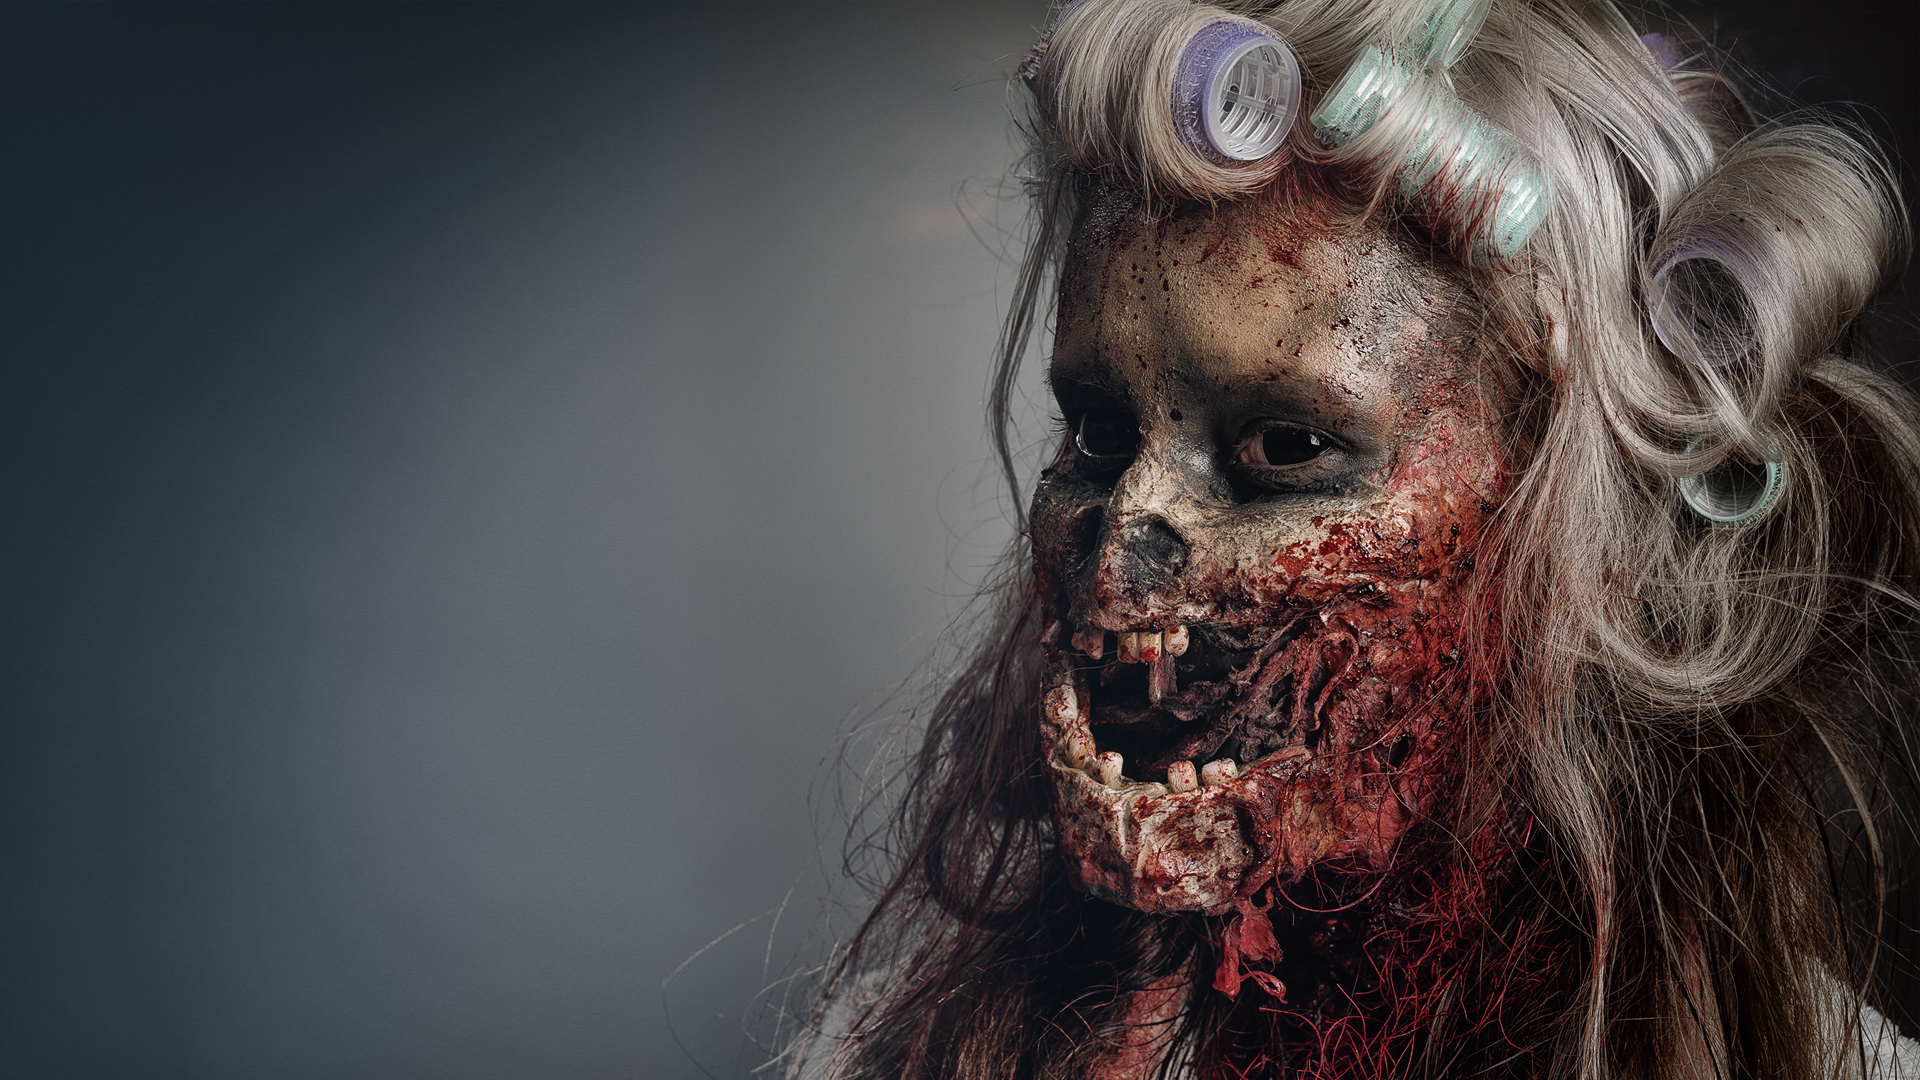 cute and scary zombie special fx makeup tutorial by ellimacs